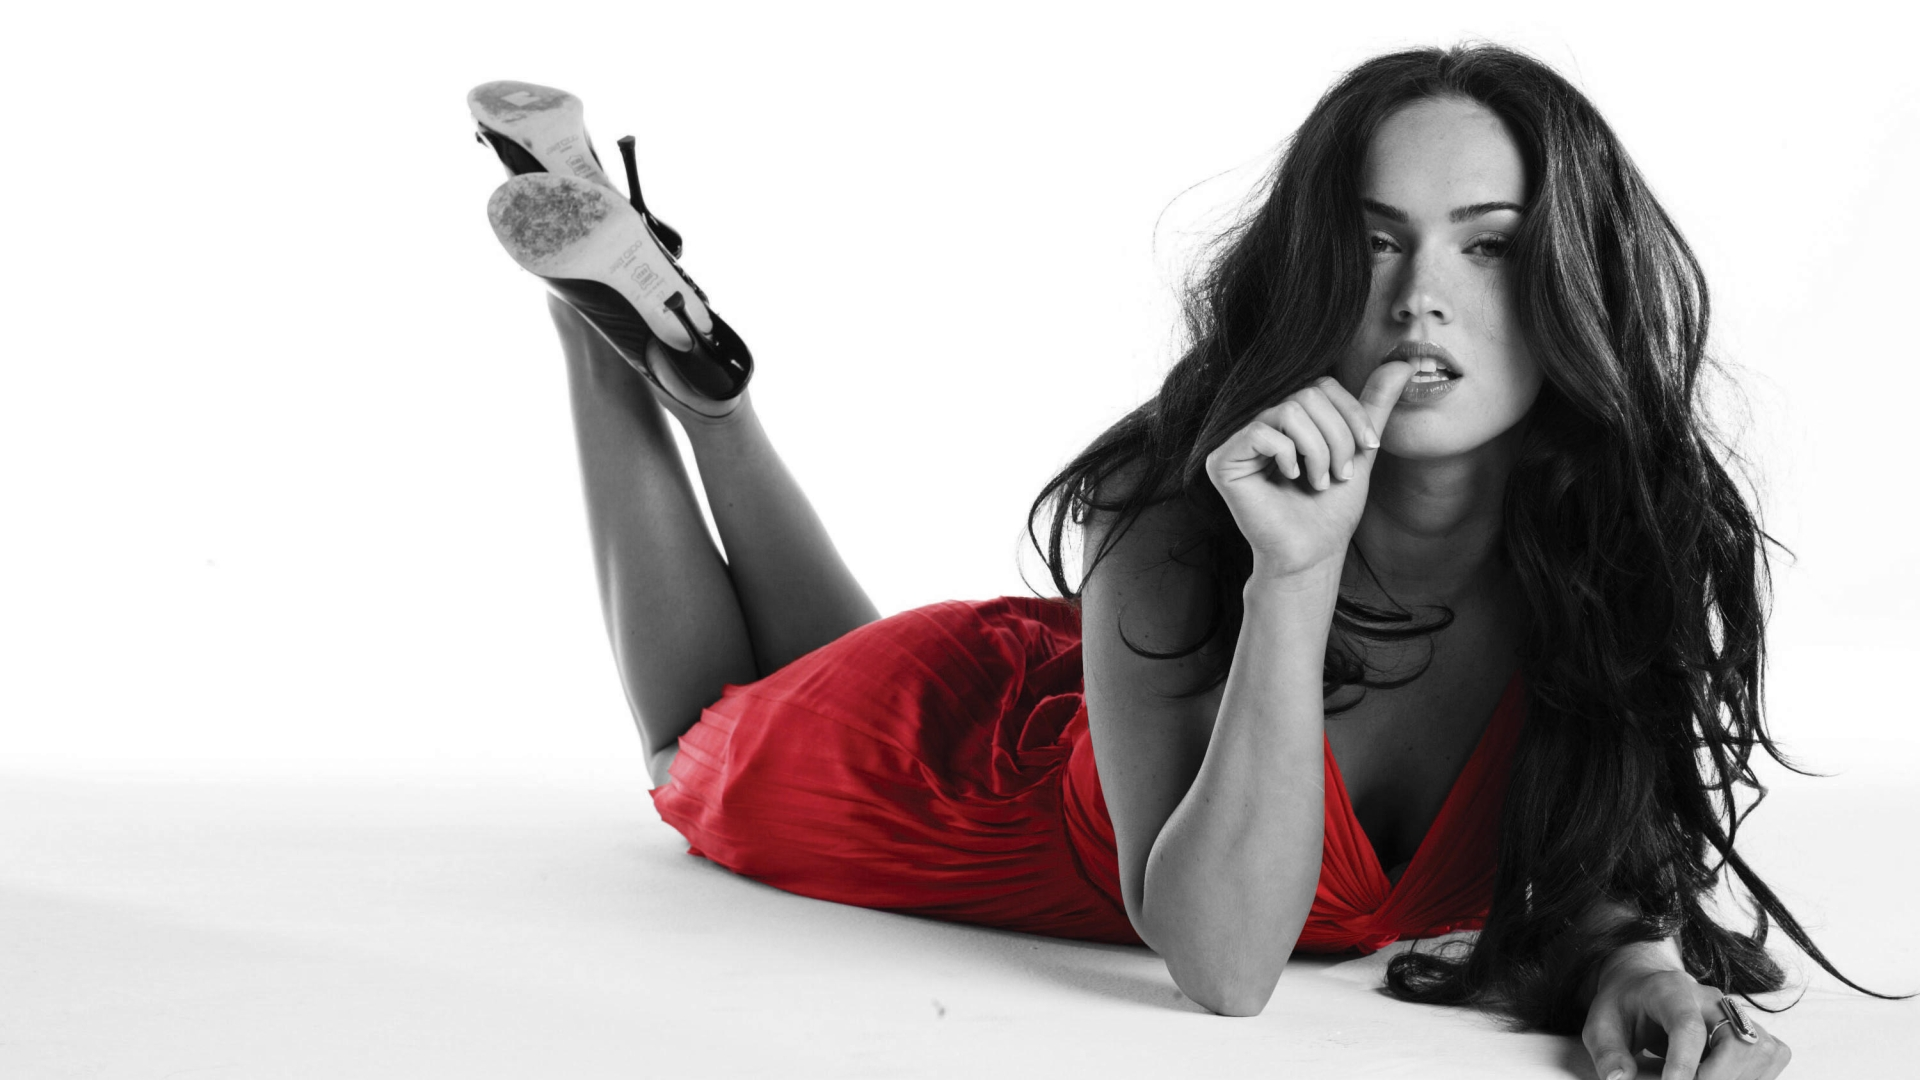 Megan Fox - The Red Dress Wallpapers